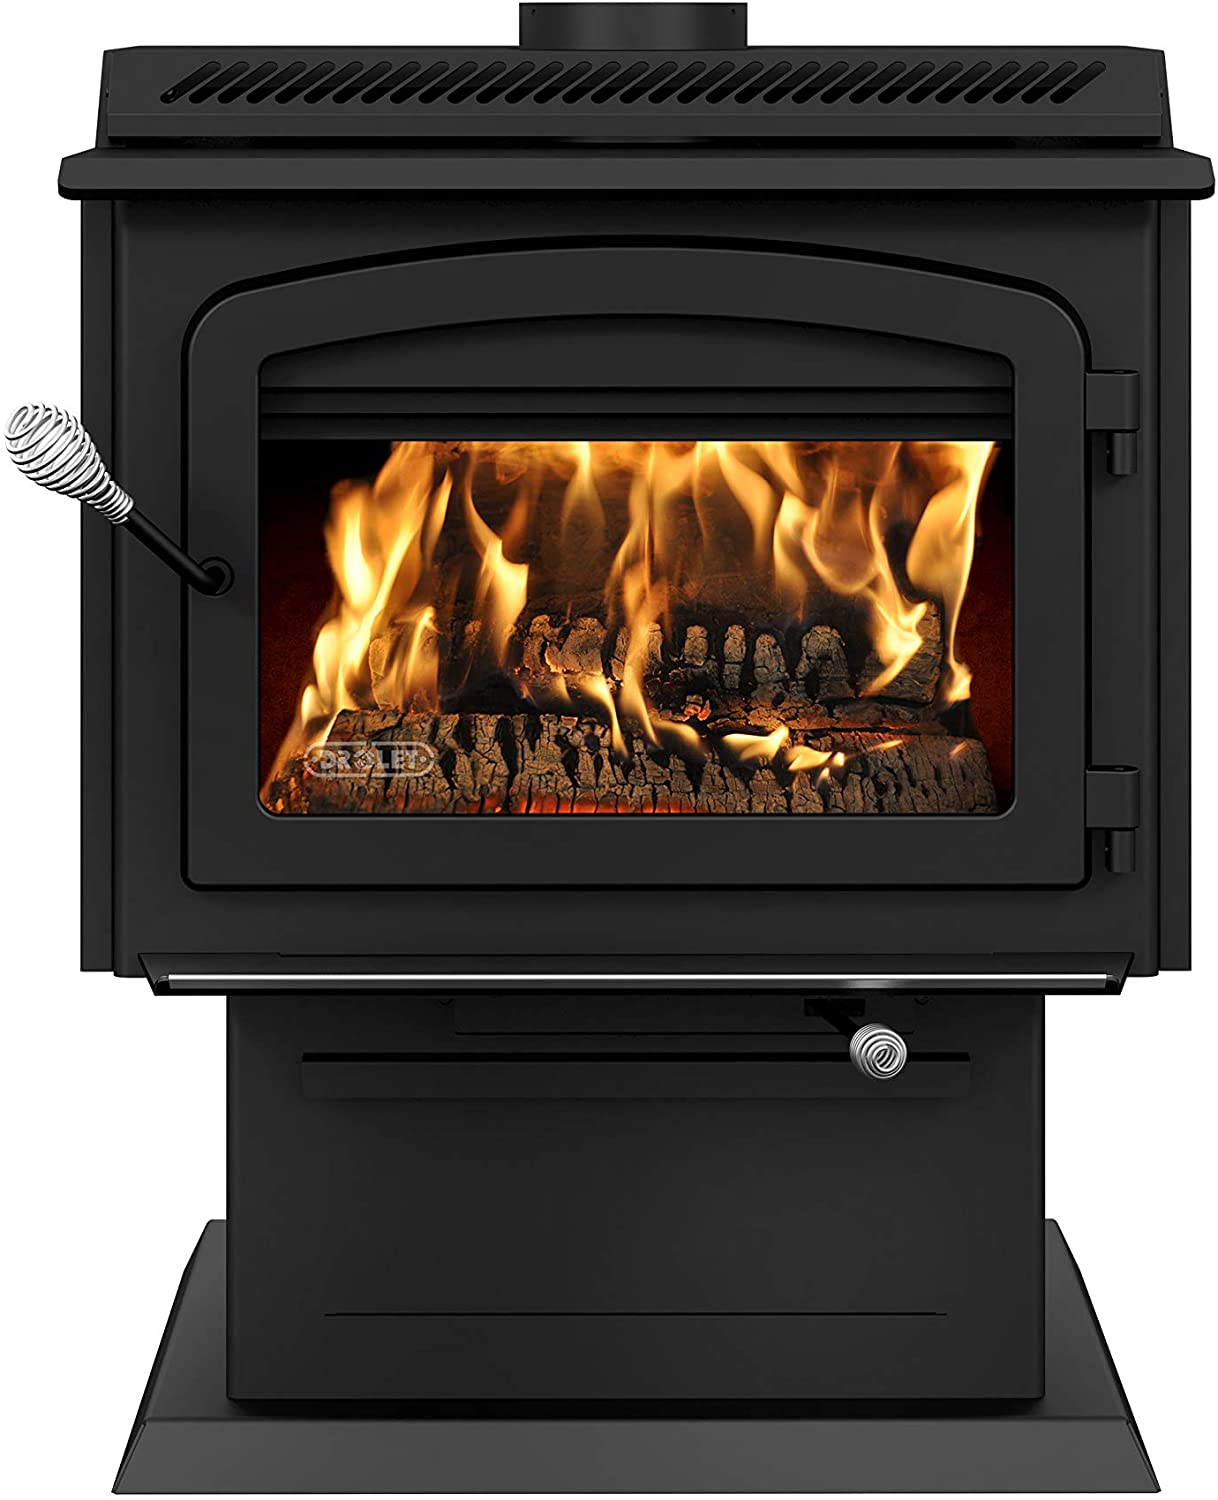 Drolet wood stoves HT3000